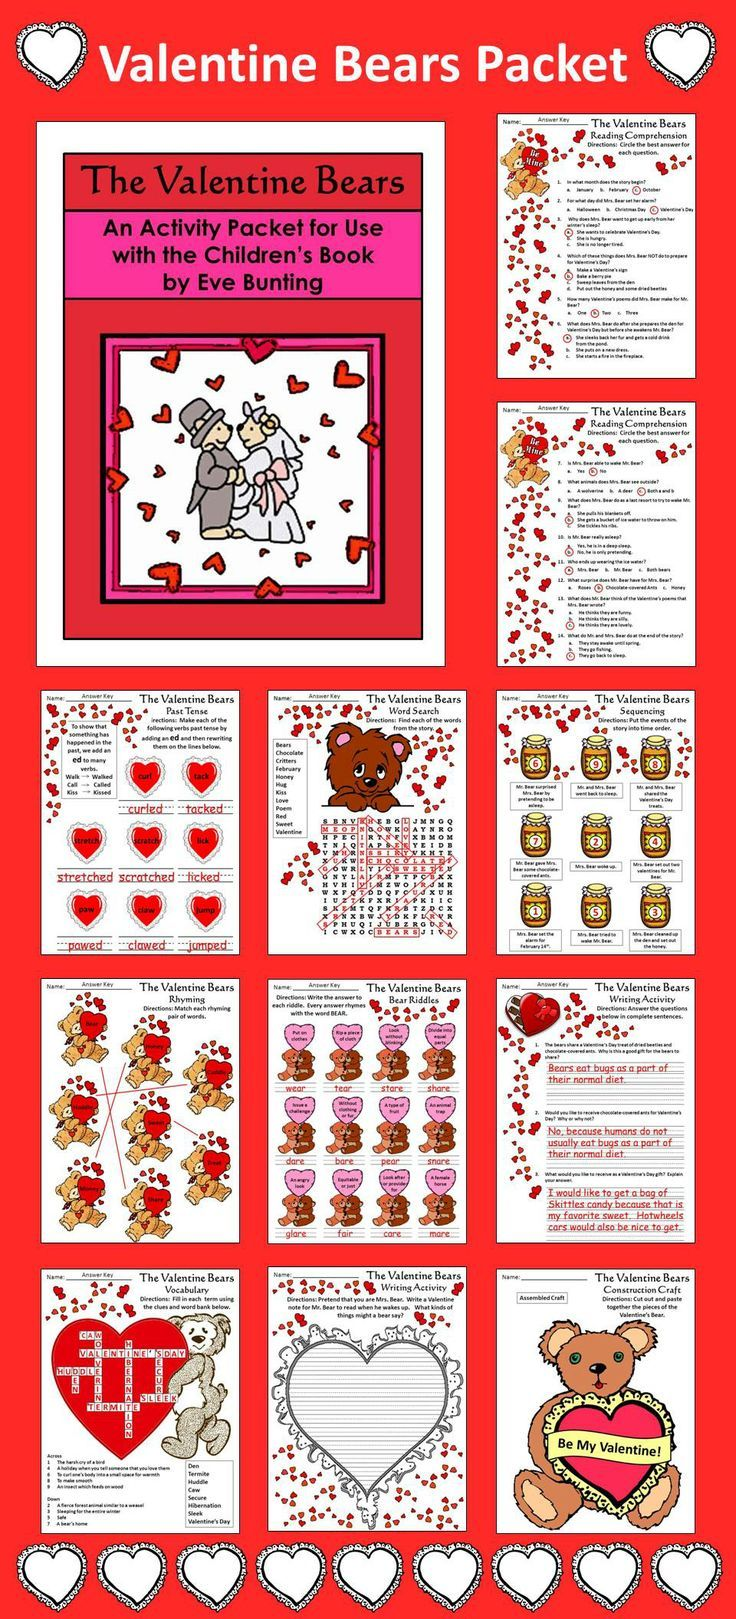 Valentine Bears Activity Packet: This colorful Valentine's Day reading activity packet complements the children's book, The Valentine Bears, by Eve Bunting.  Contents include: * Reading Comprehension Quiz * Crossword puzzle * Valentine's Day Word Search * Past Tense Verb Worksheet * Sequencing Activity * Rhyming Words Worksheet * Bear Riddles Worksheet * Writing Activities * Valentine's Bear Craft * Answer Keys